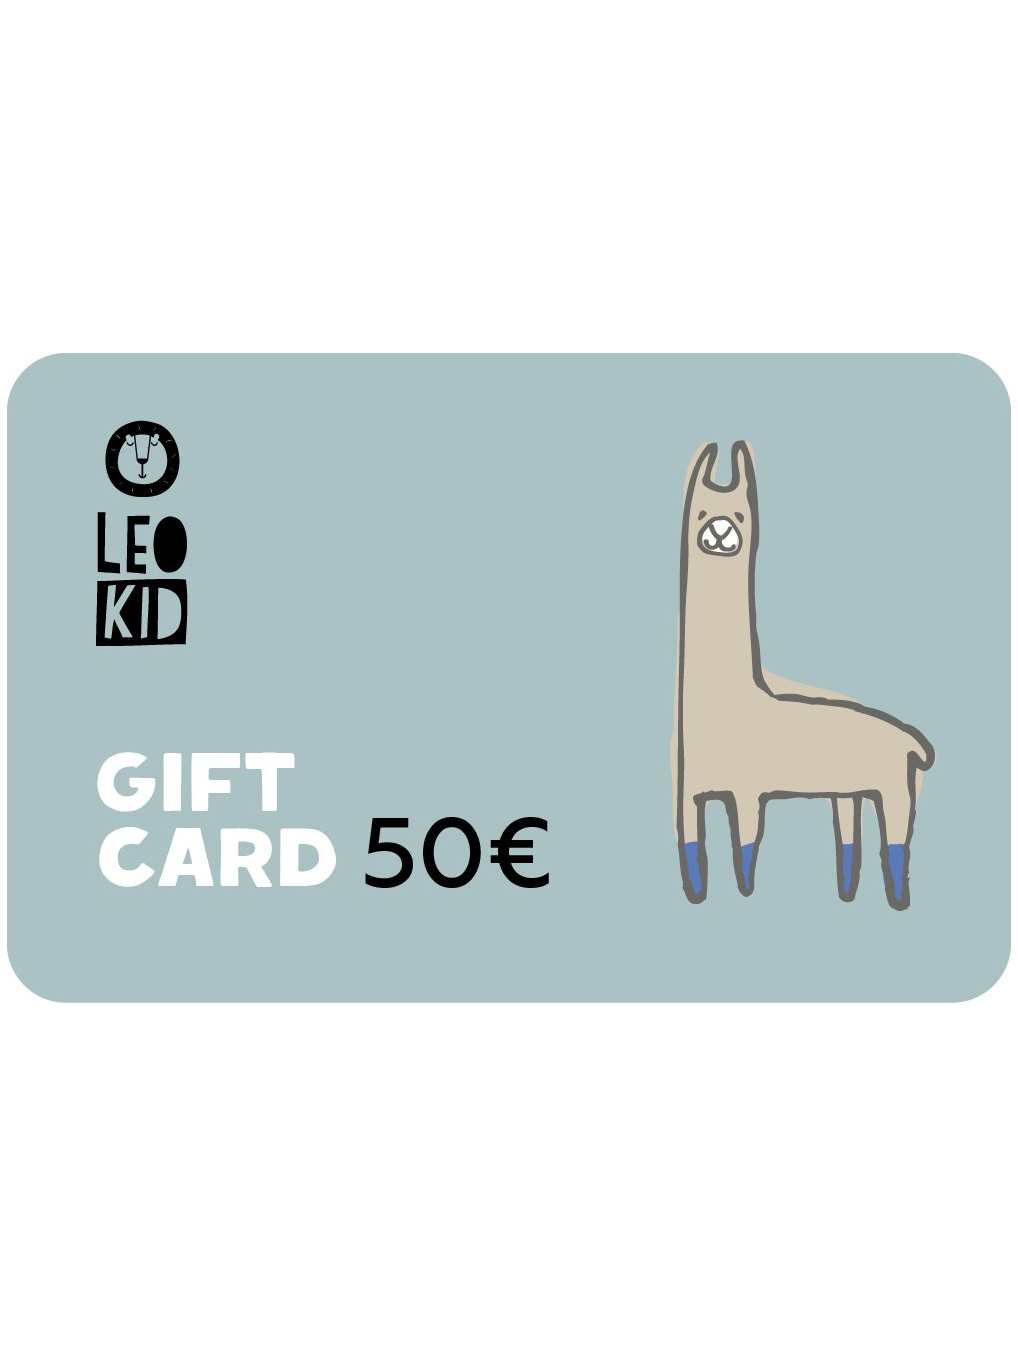 Electronic gift card 50€